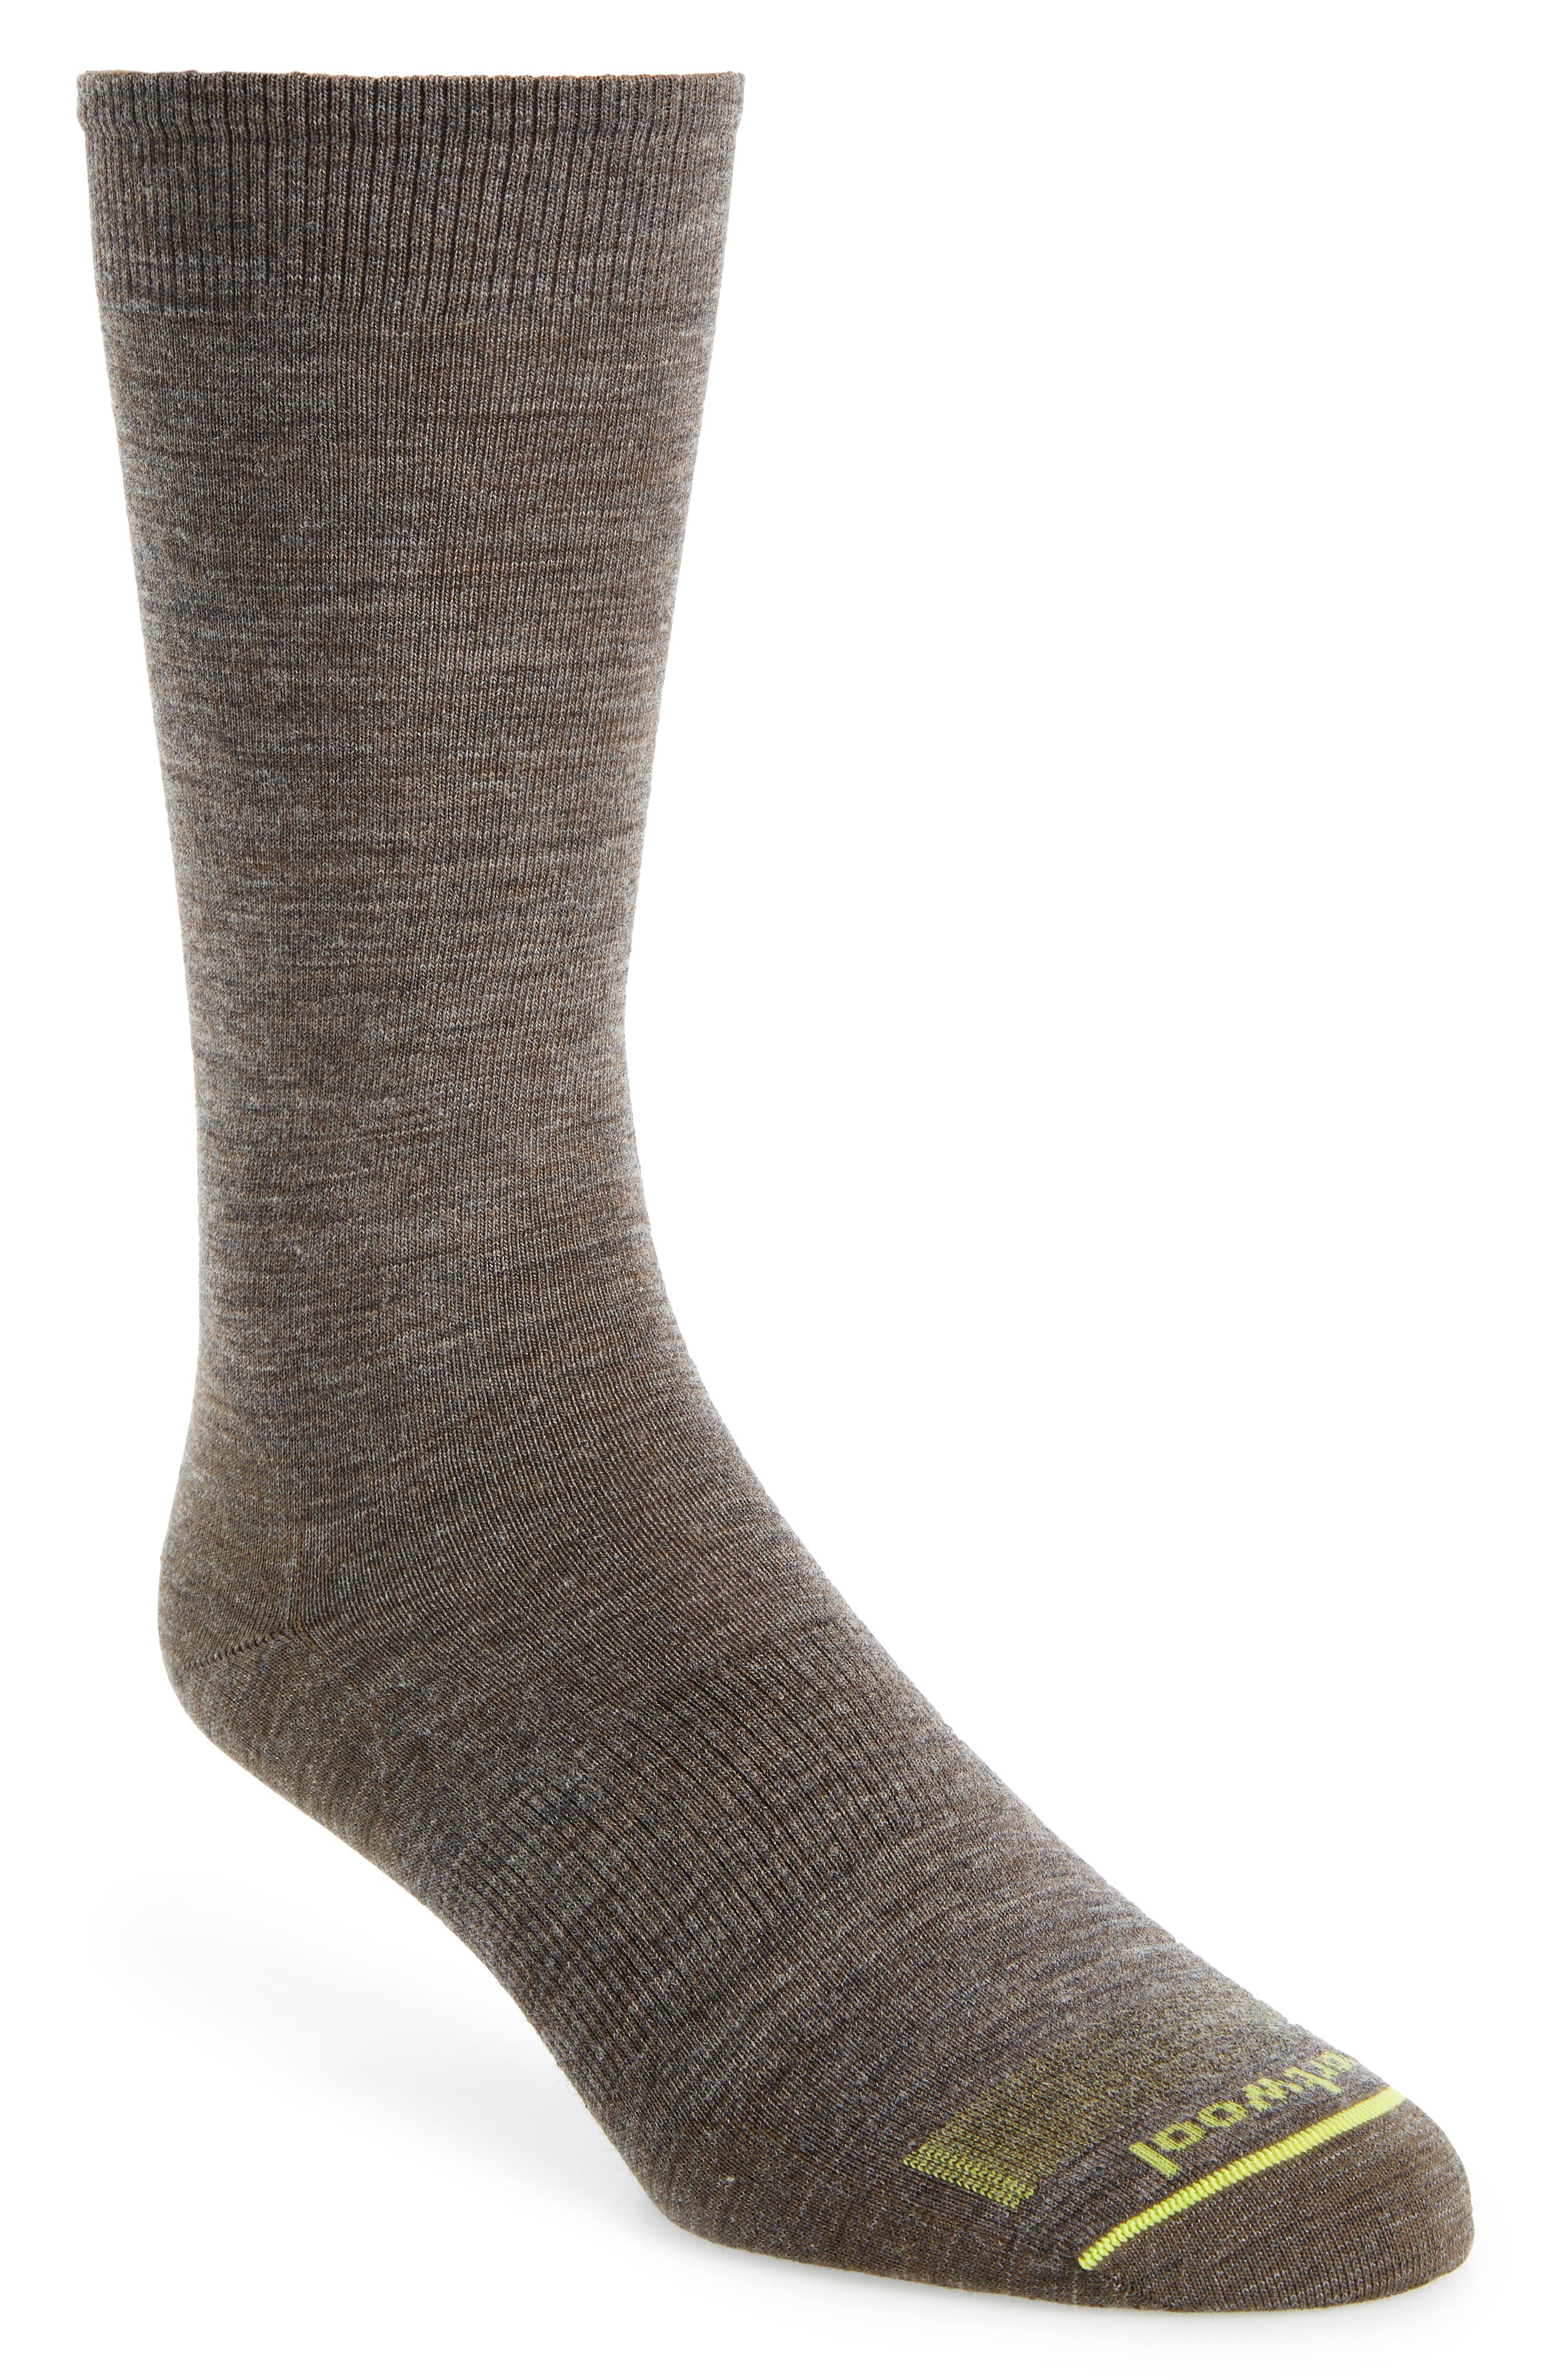 Anchor Line Merino Wool Blend Socks, Main, color, TAUPE